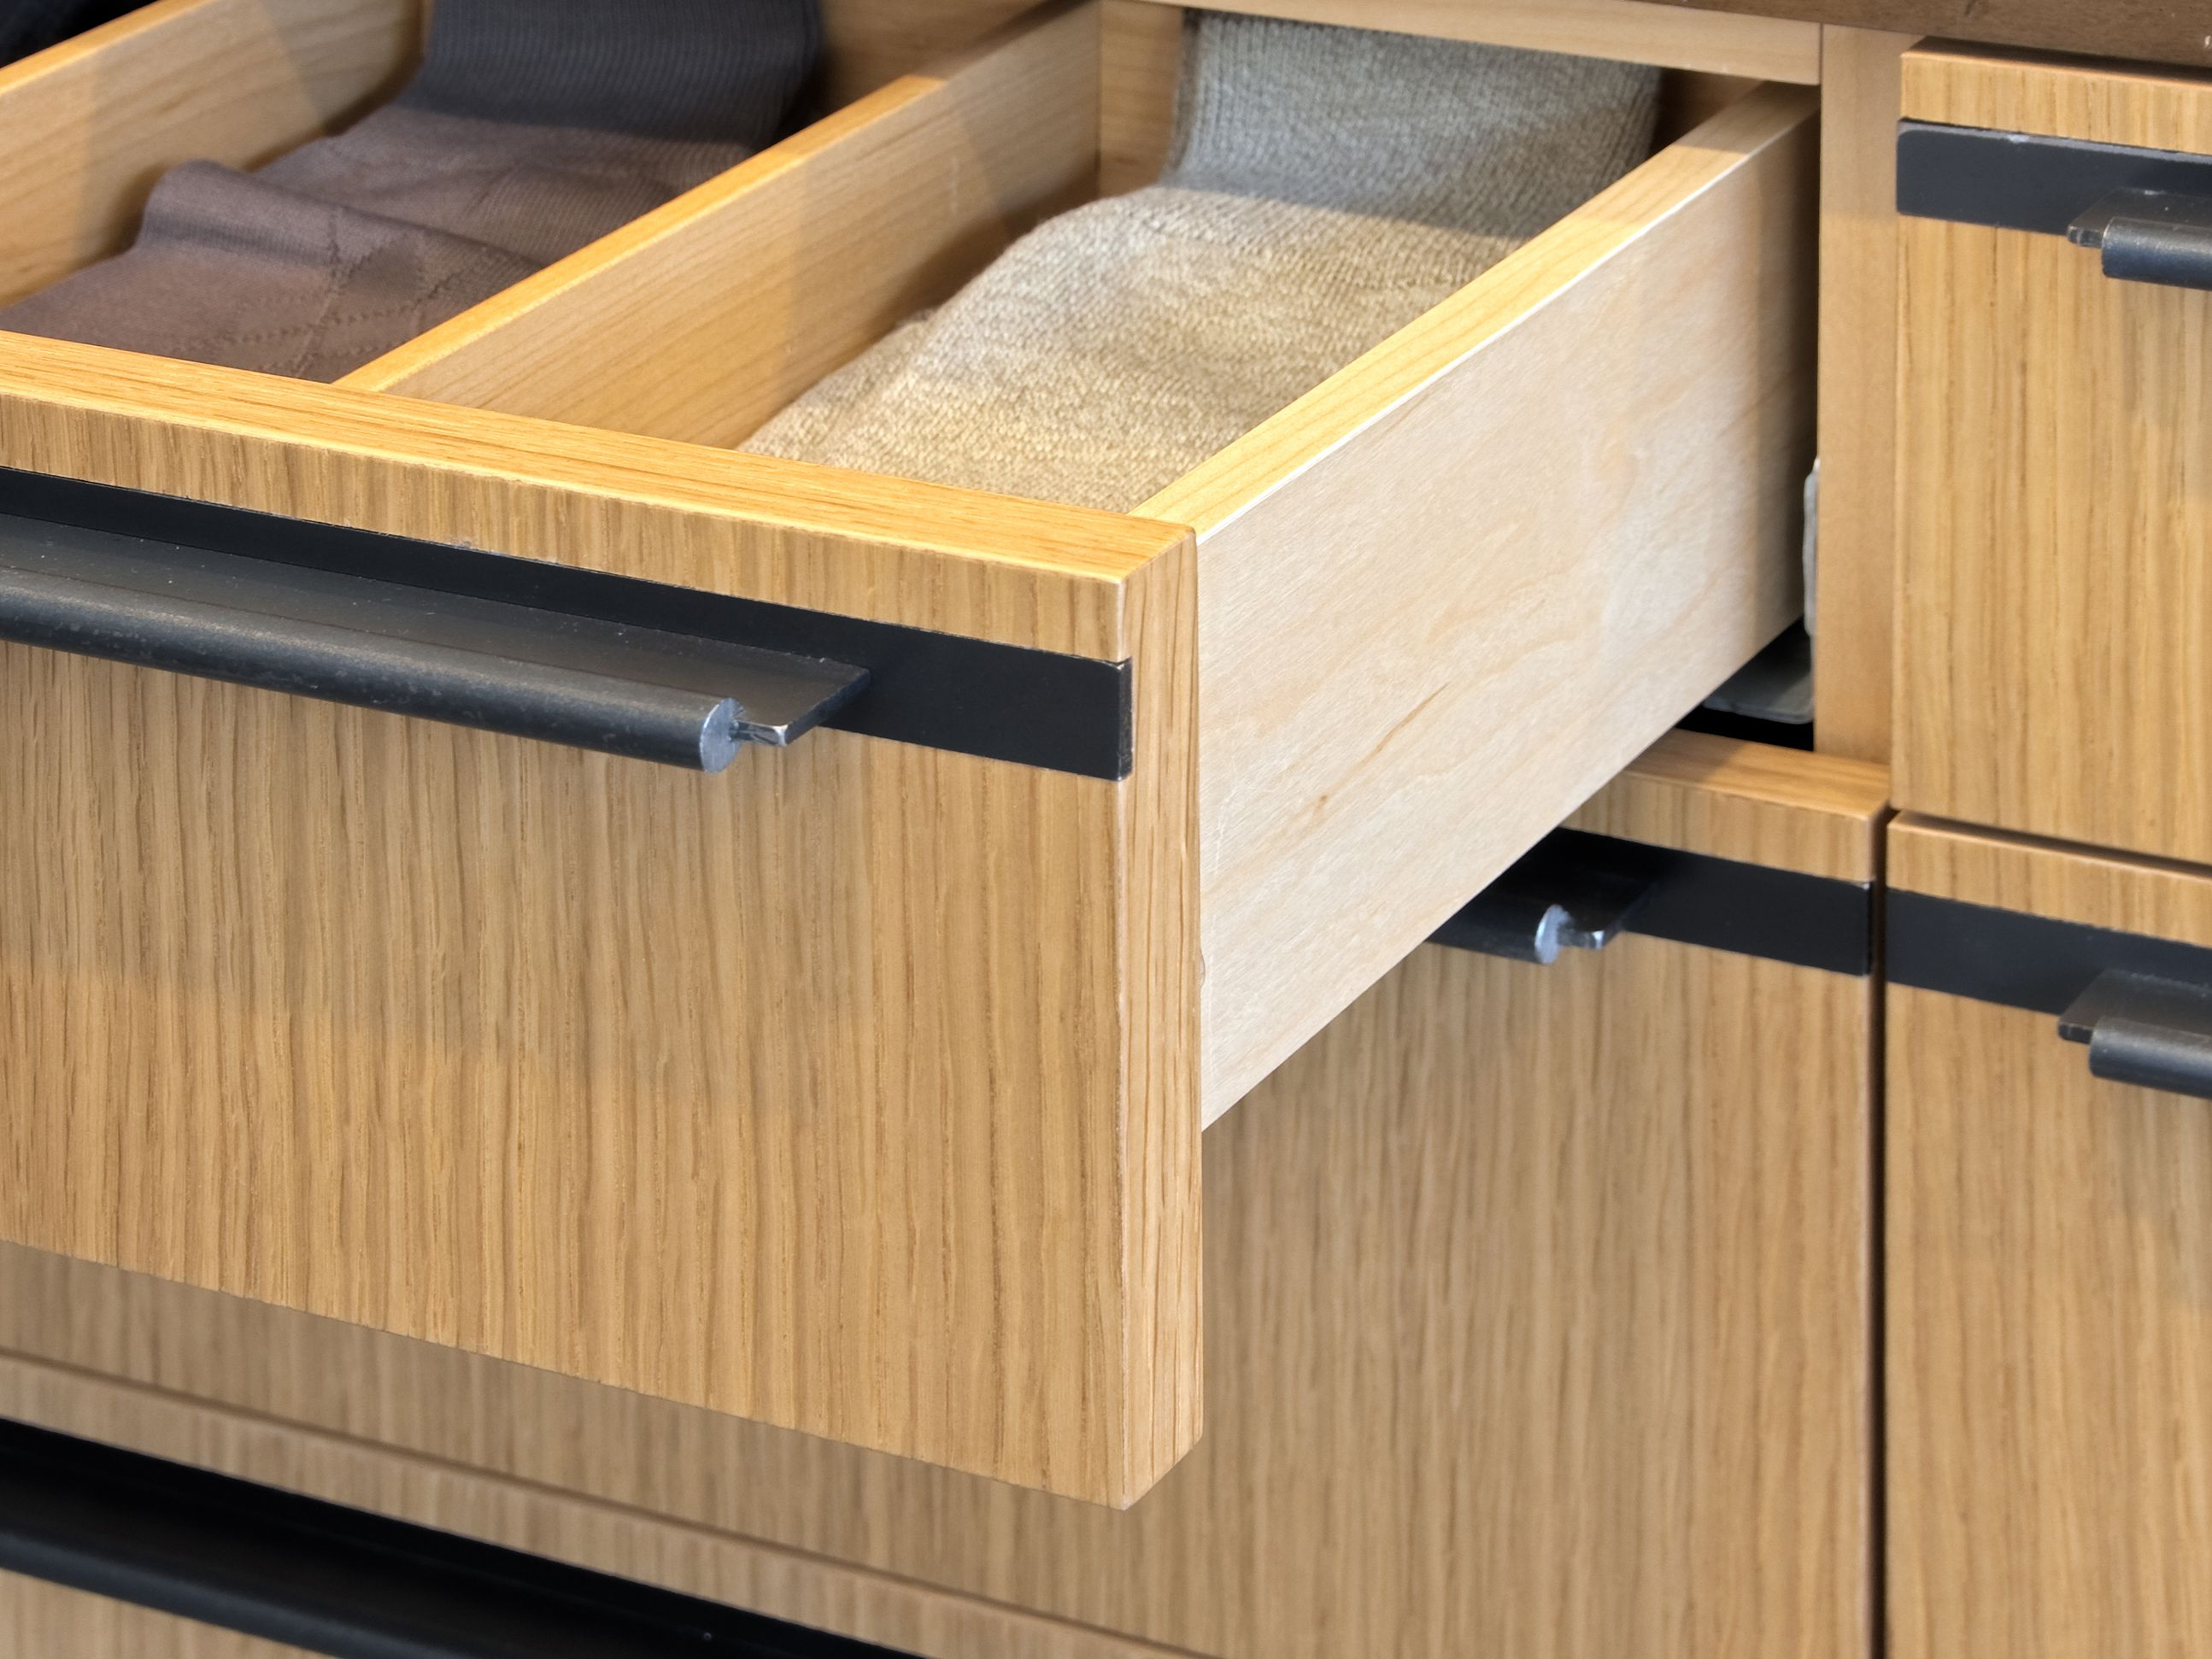 Bamboo Cabinet Guide